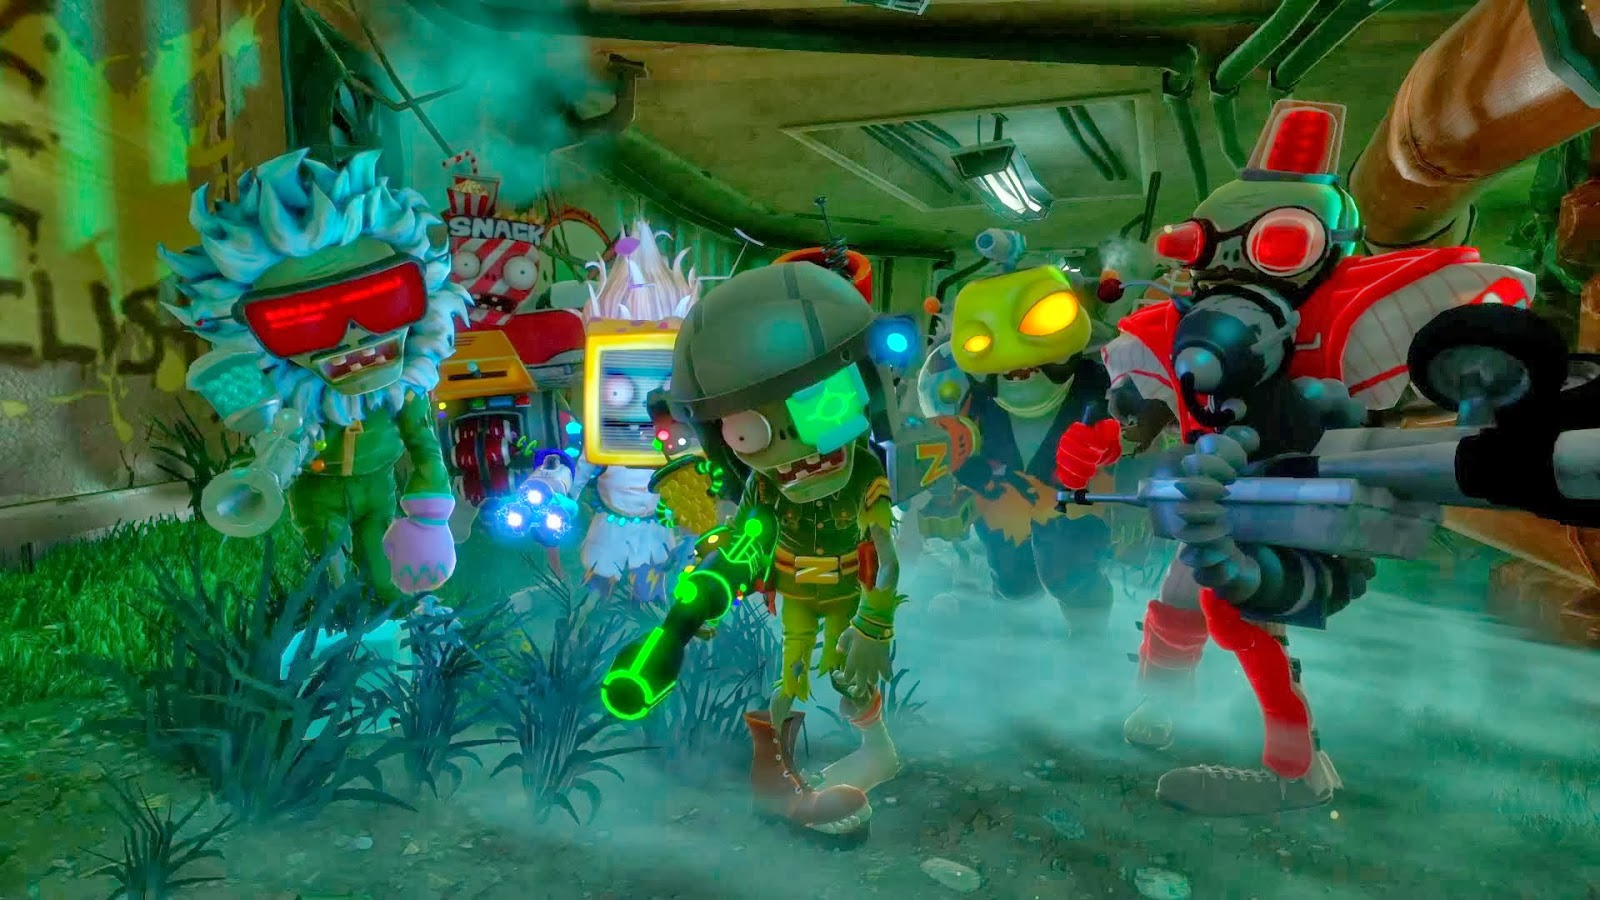 What 39 S The Name Of The Song Plants Vs Zombies Garden Warfare Launch Trailer Trailer Song